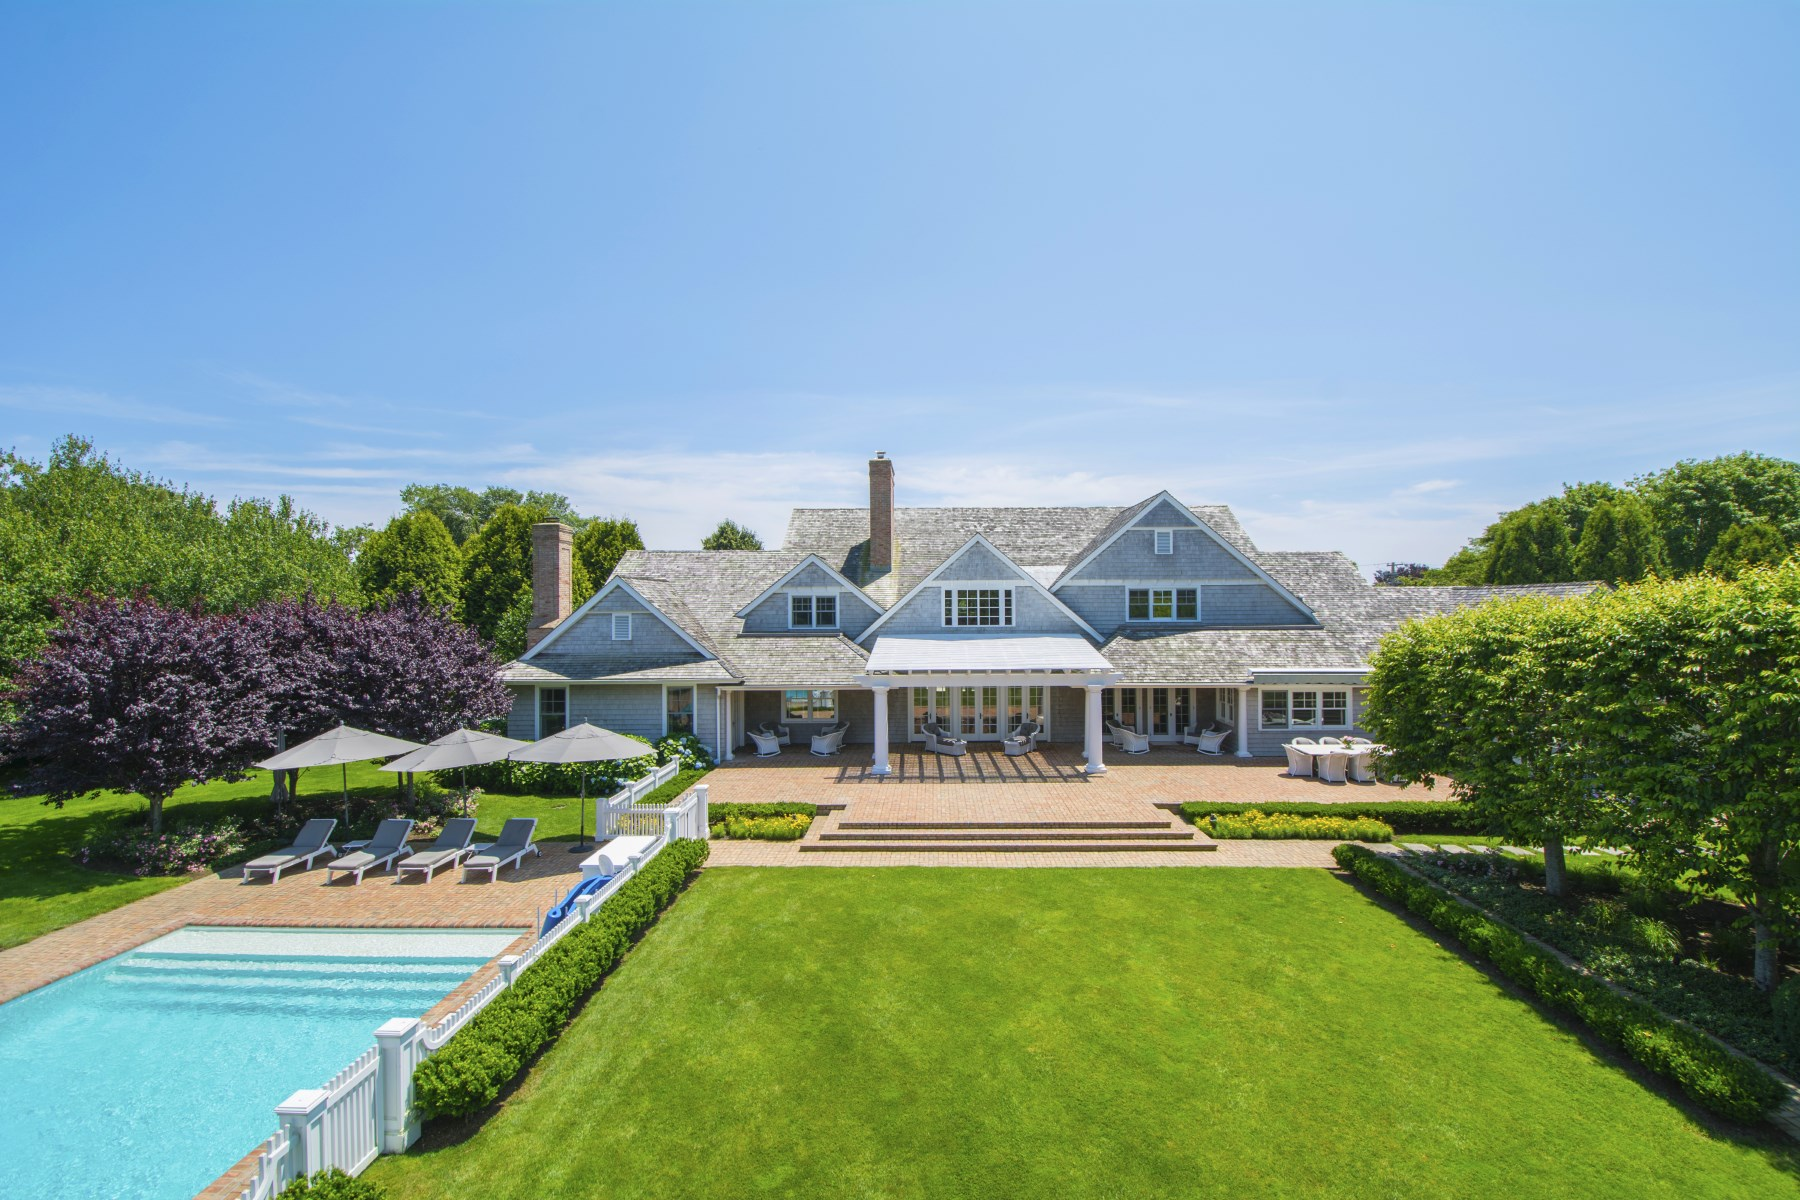 Villa per Vendita alle ore Southampton Village Estate 295 Wickapogue Road Southampton, New York, 11968 Stati Uniti